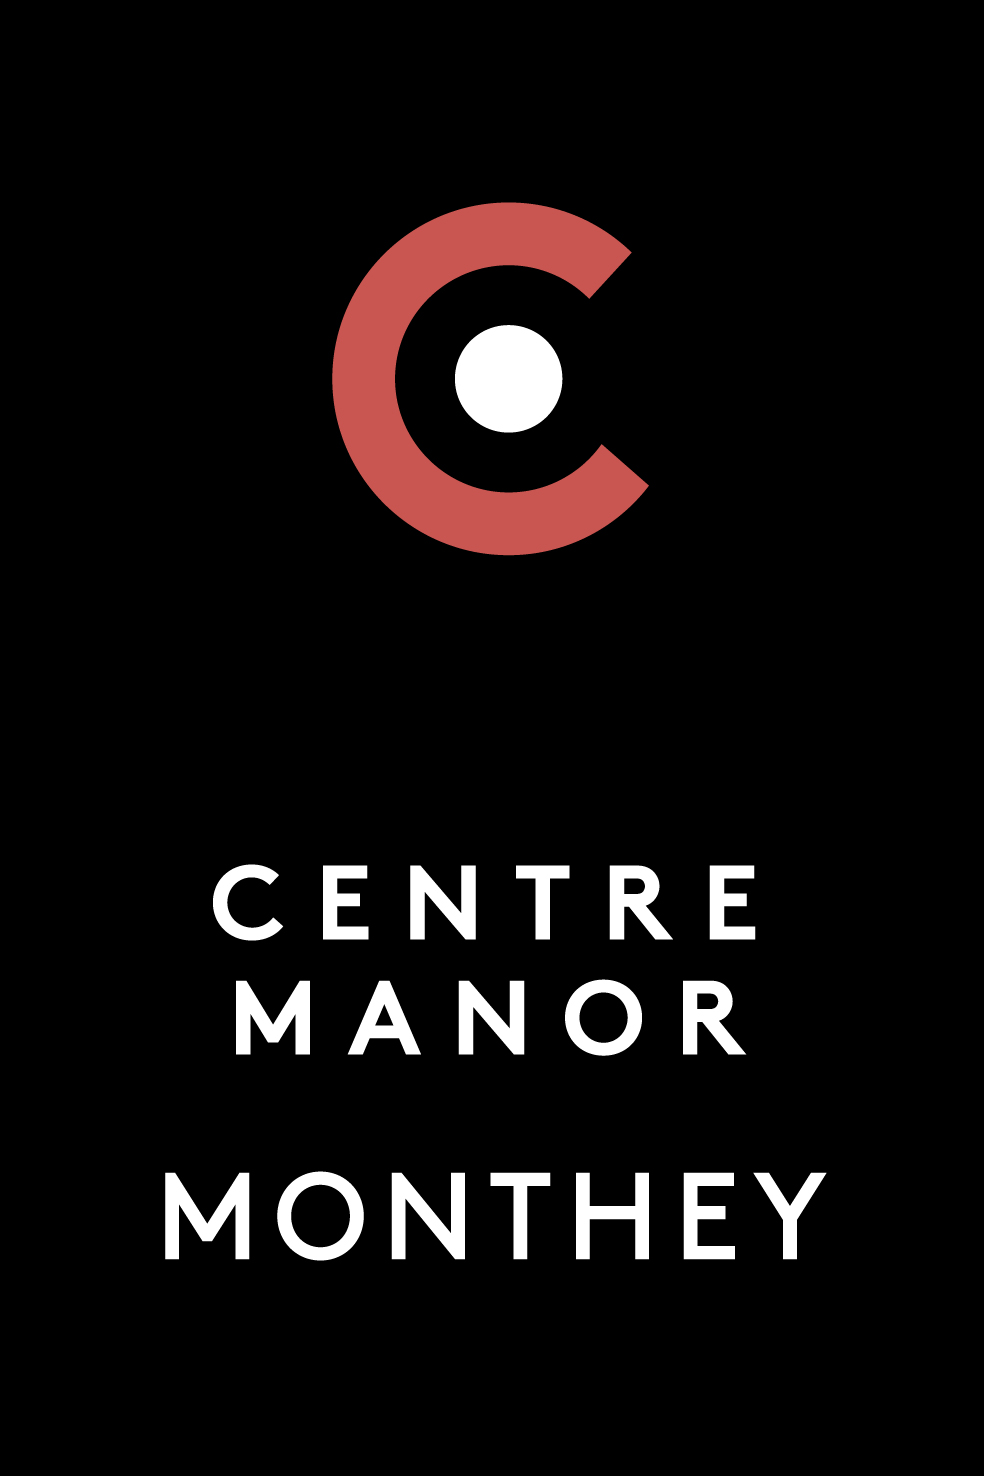 Centre Manor Monthey